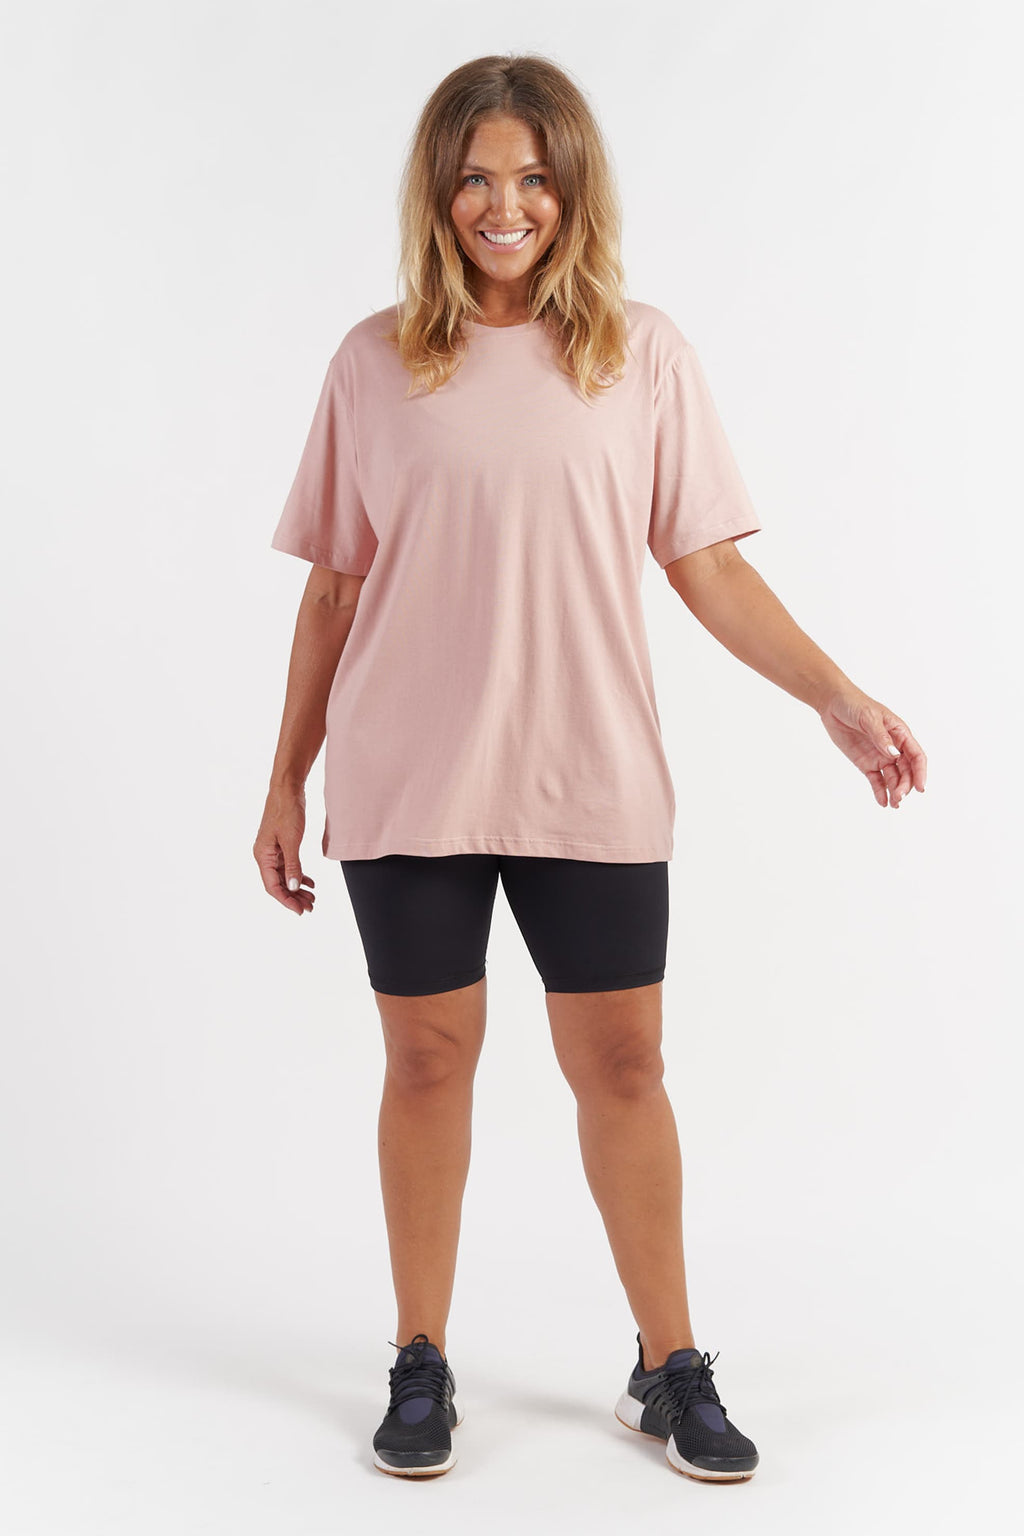 activewear-oversized-tee-dust-pink-large-front